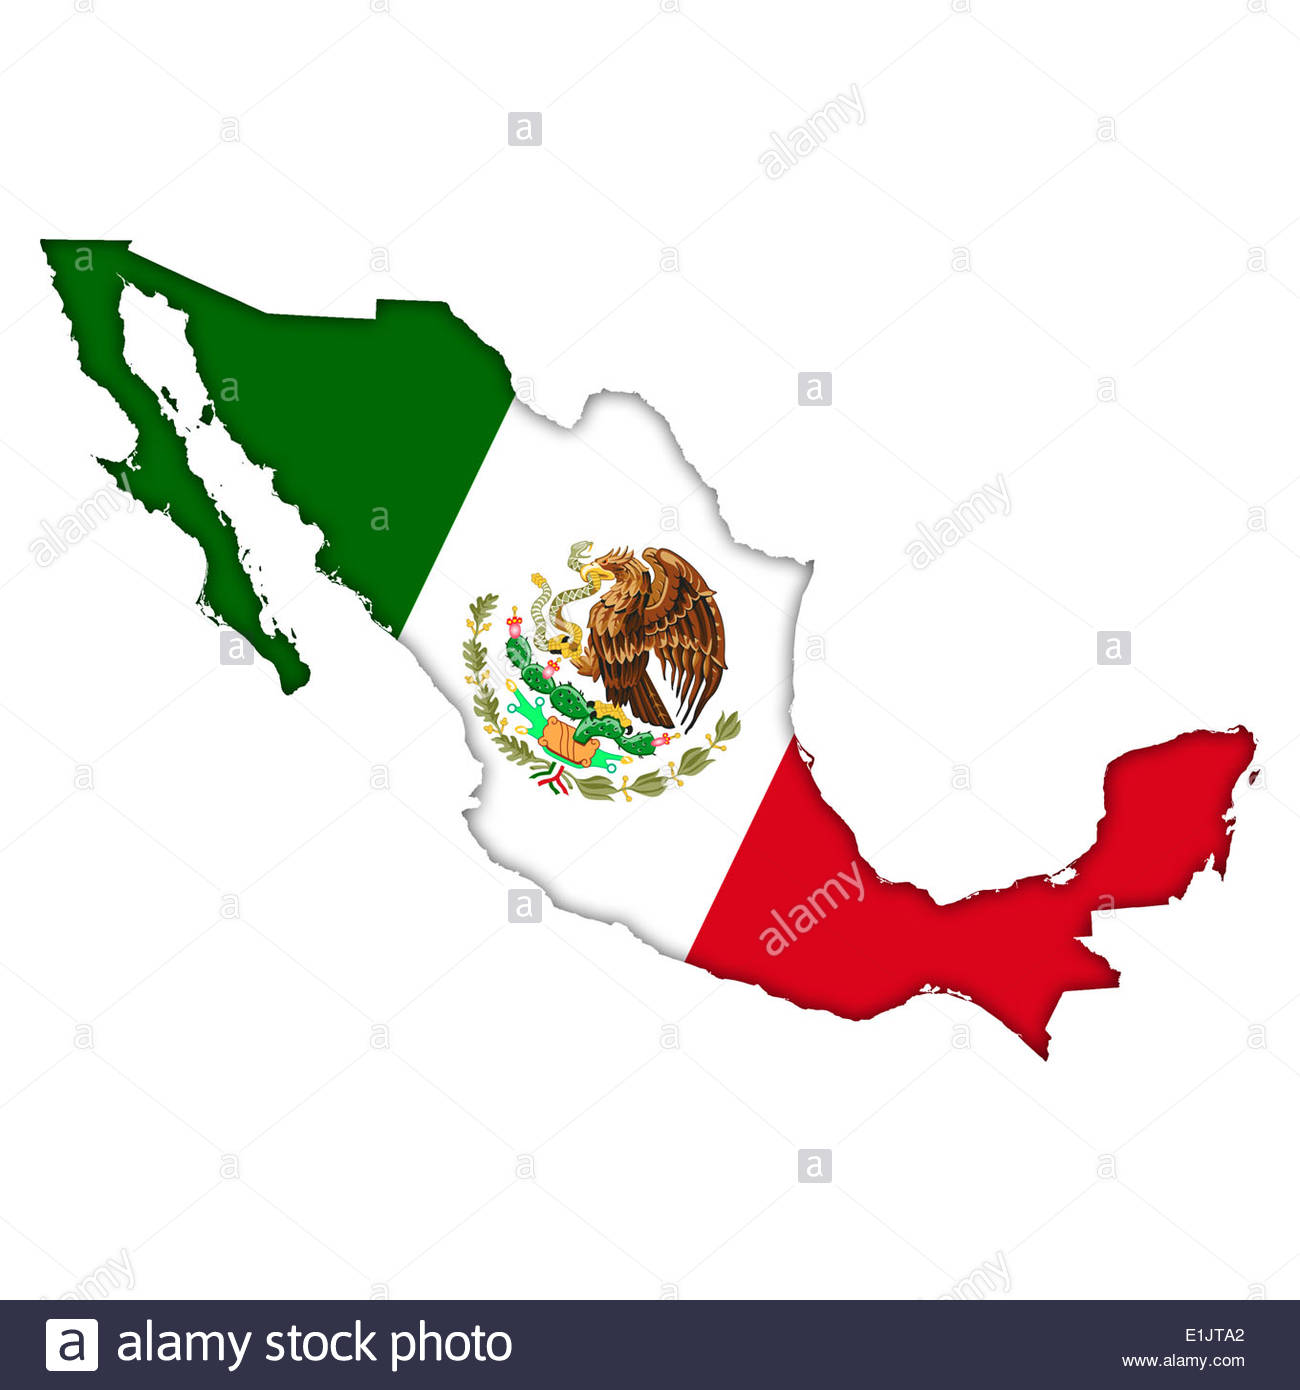 Mexico flag map icon logo stock photo royalty free image for Mexican logos images